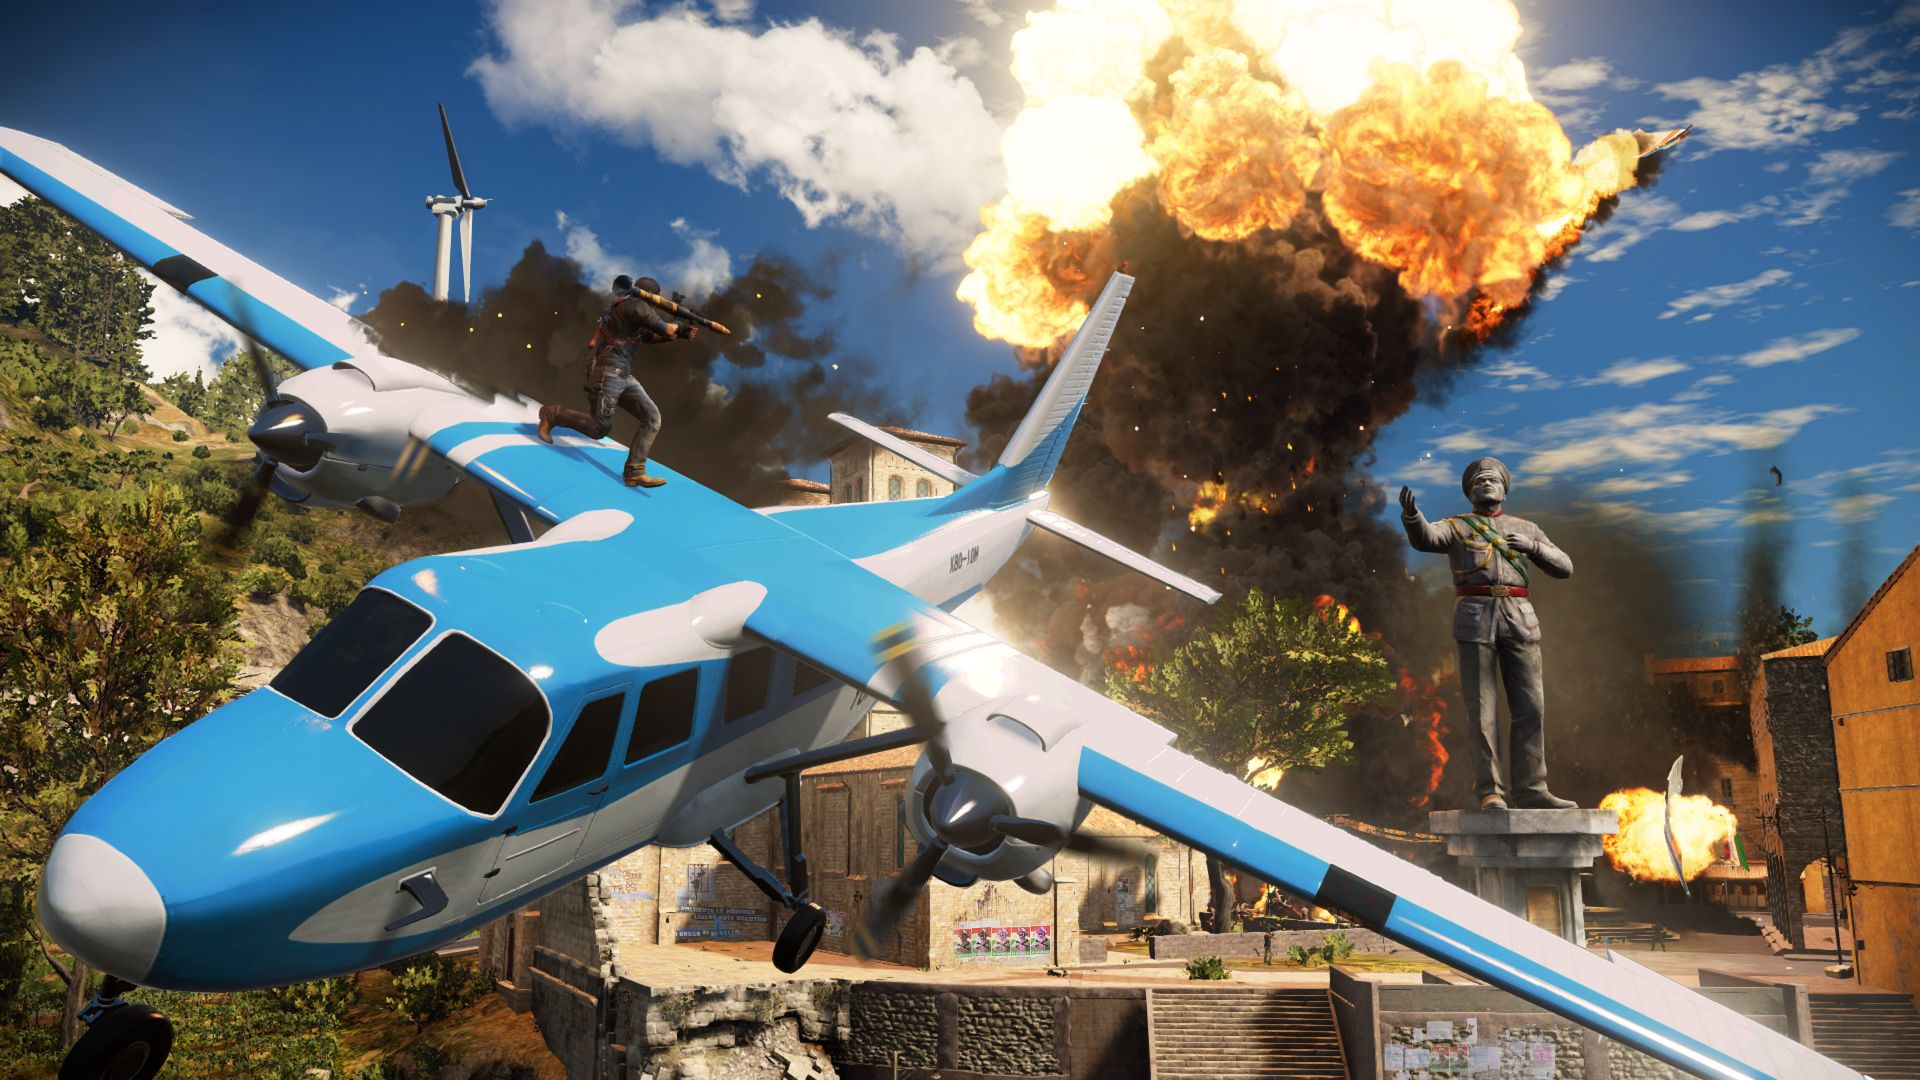 Just Cause 3, Best Games 2015, game, shooter, open world, PC, PS4, Xbox One (horizontal)